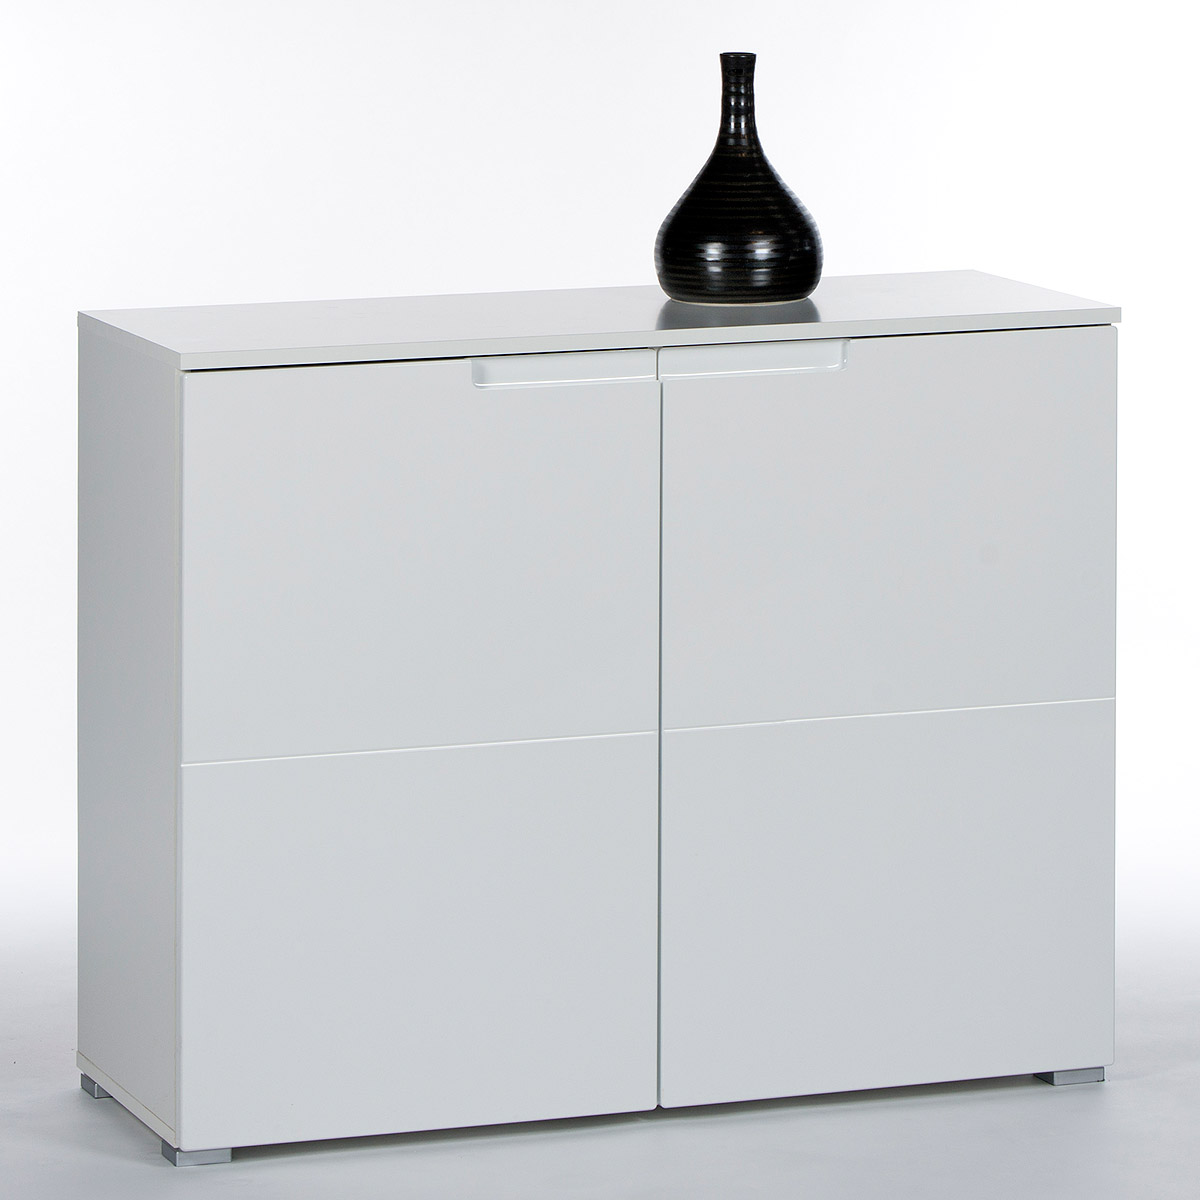 kommode spice 6 anrichte sideboard fronten in hochglanz weiss 100 cm. Black Bedroom Furniture Sets. Home Design Ideas